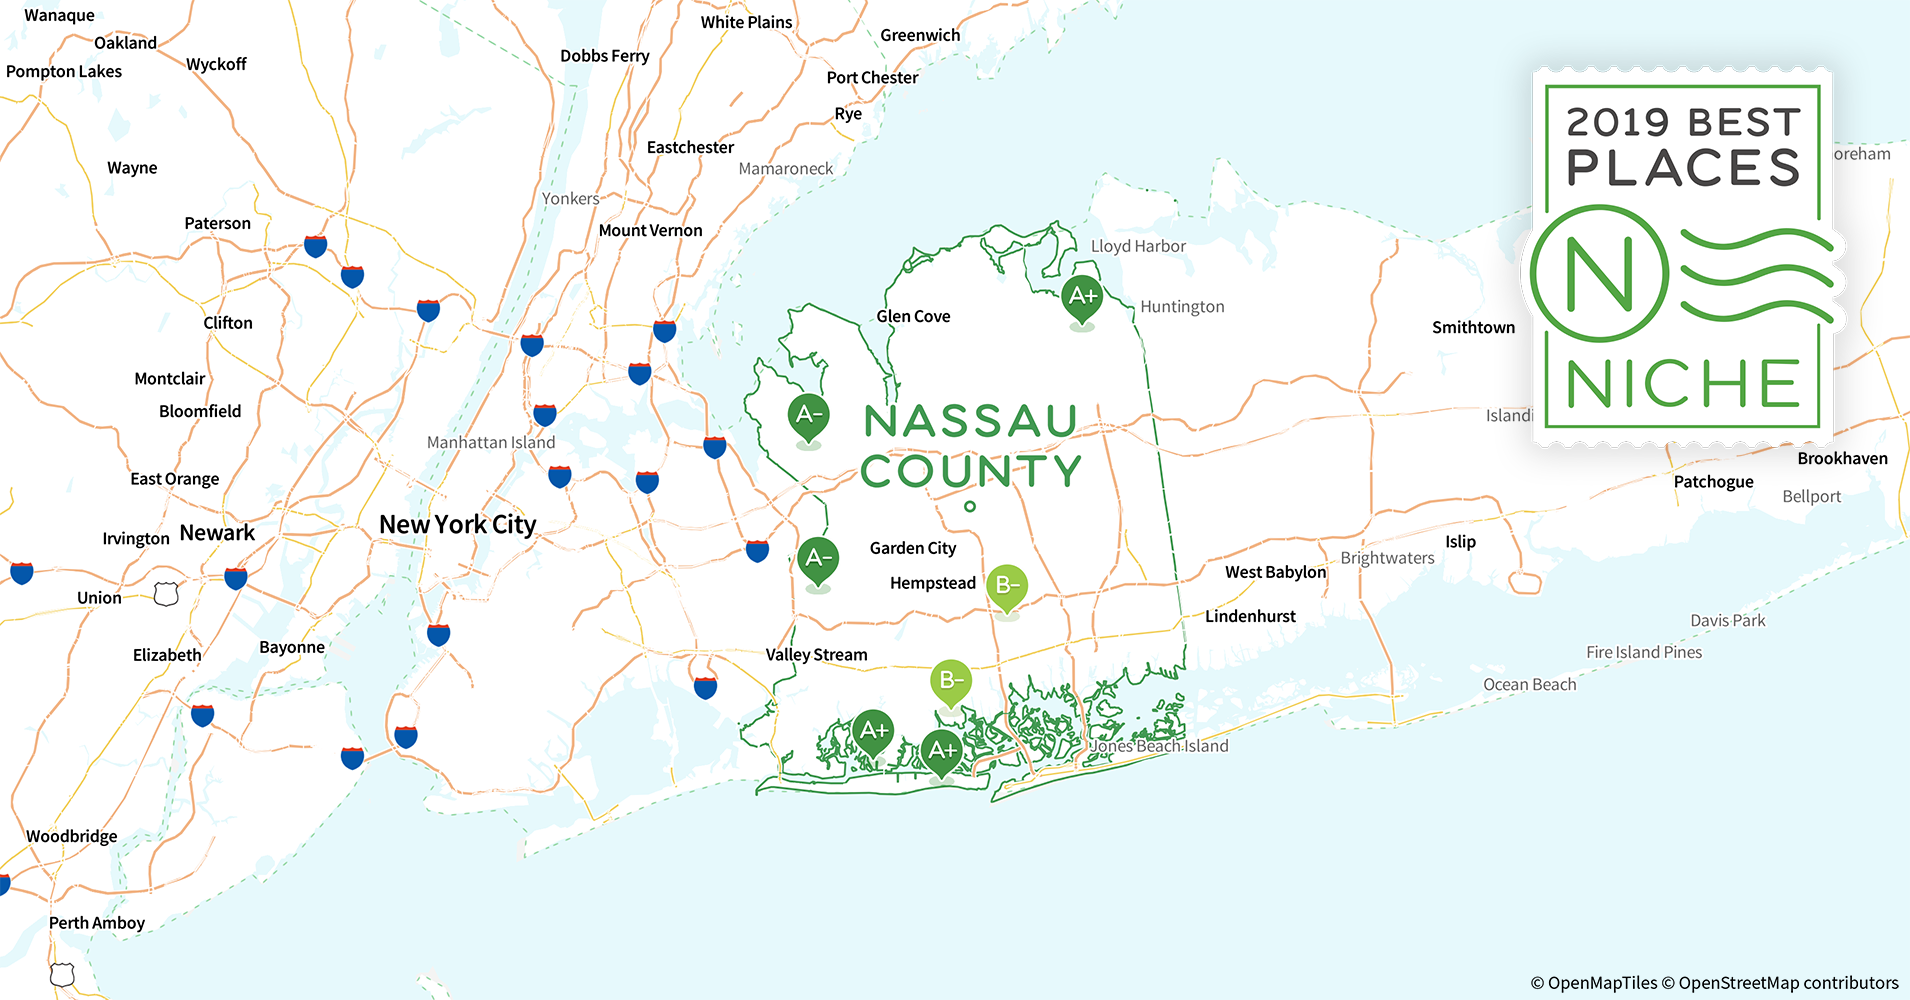 2019 Most Diverse Places to Live in Nassau County, NY - Niche